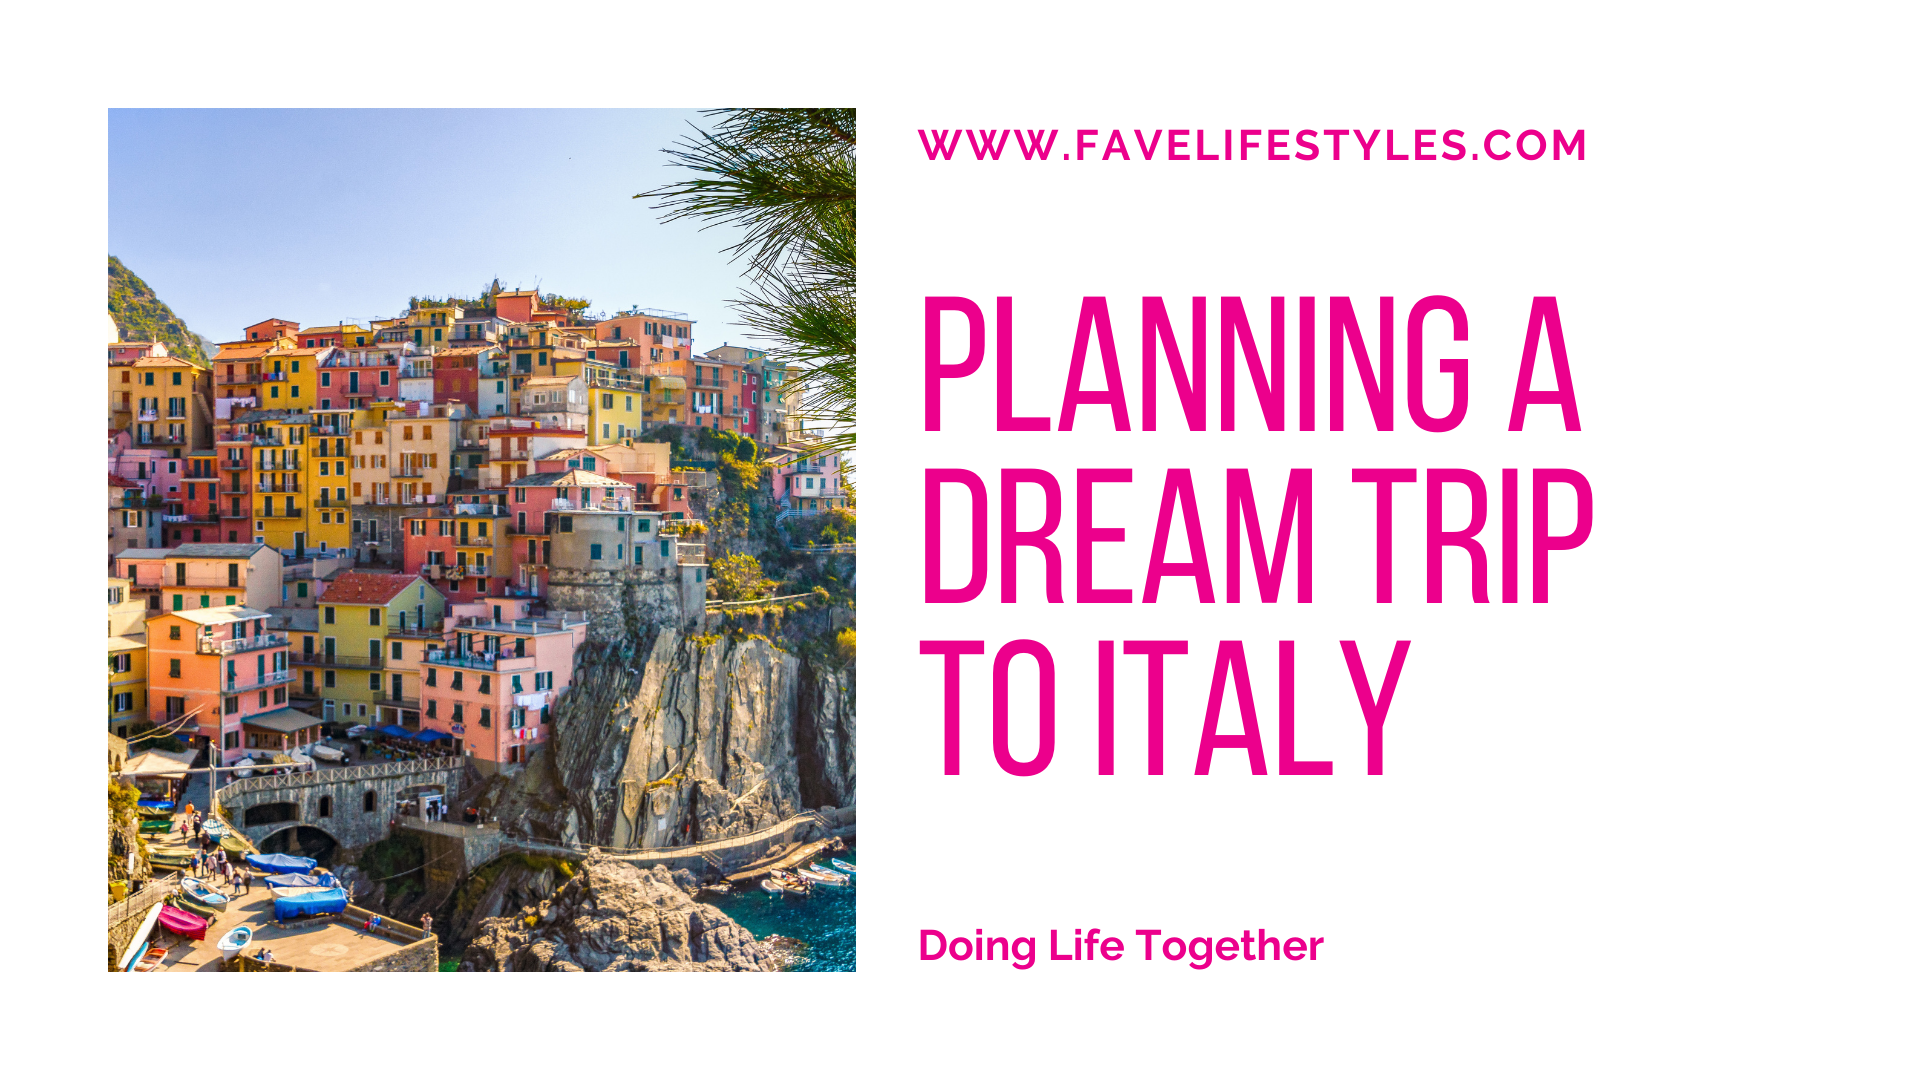 Plan Your Dream Trip to Italy